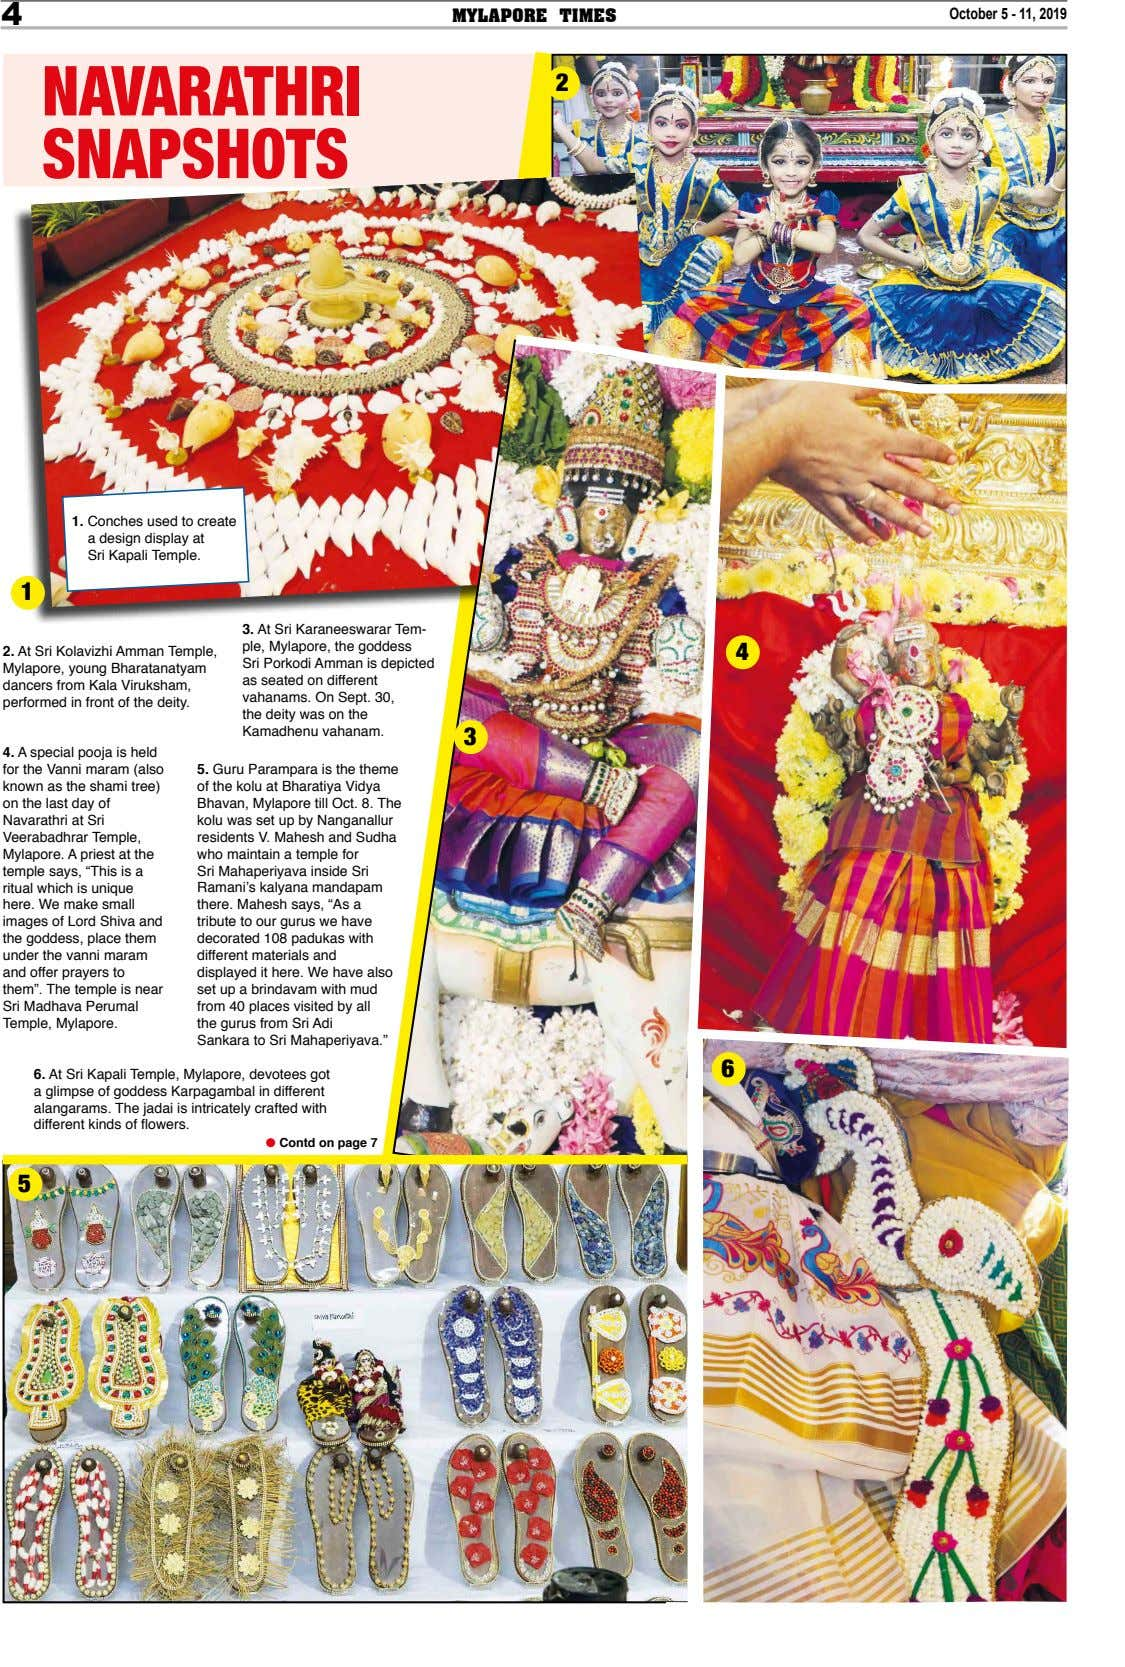 4 MYLAPORE TIMES October 5 - 11, 2019 NAVARATHRI 2 SNAPSHOTS 1. Conches used to